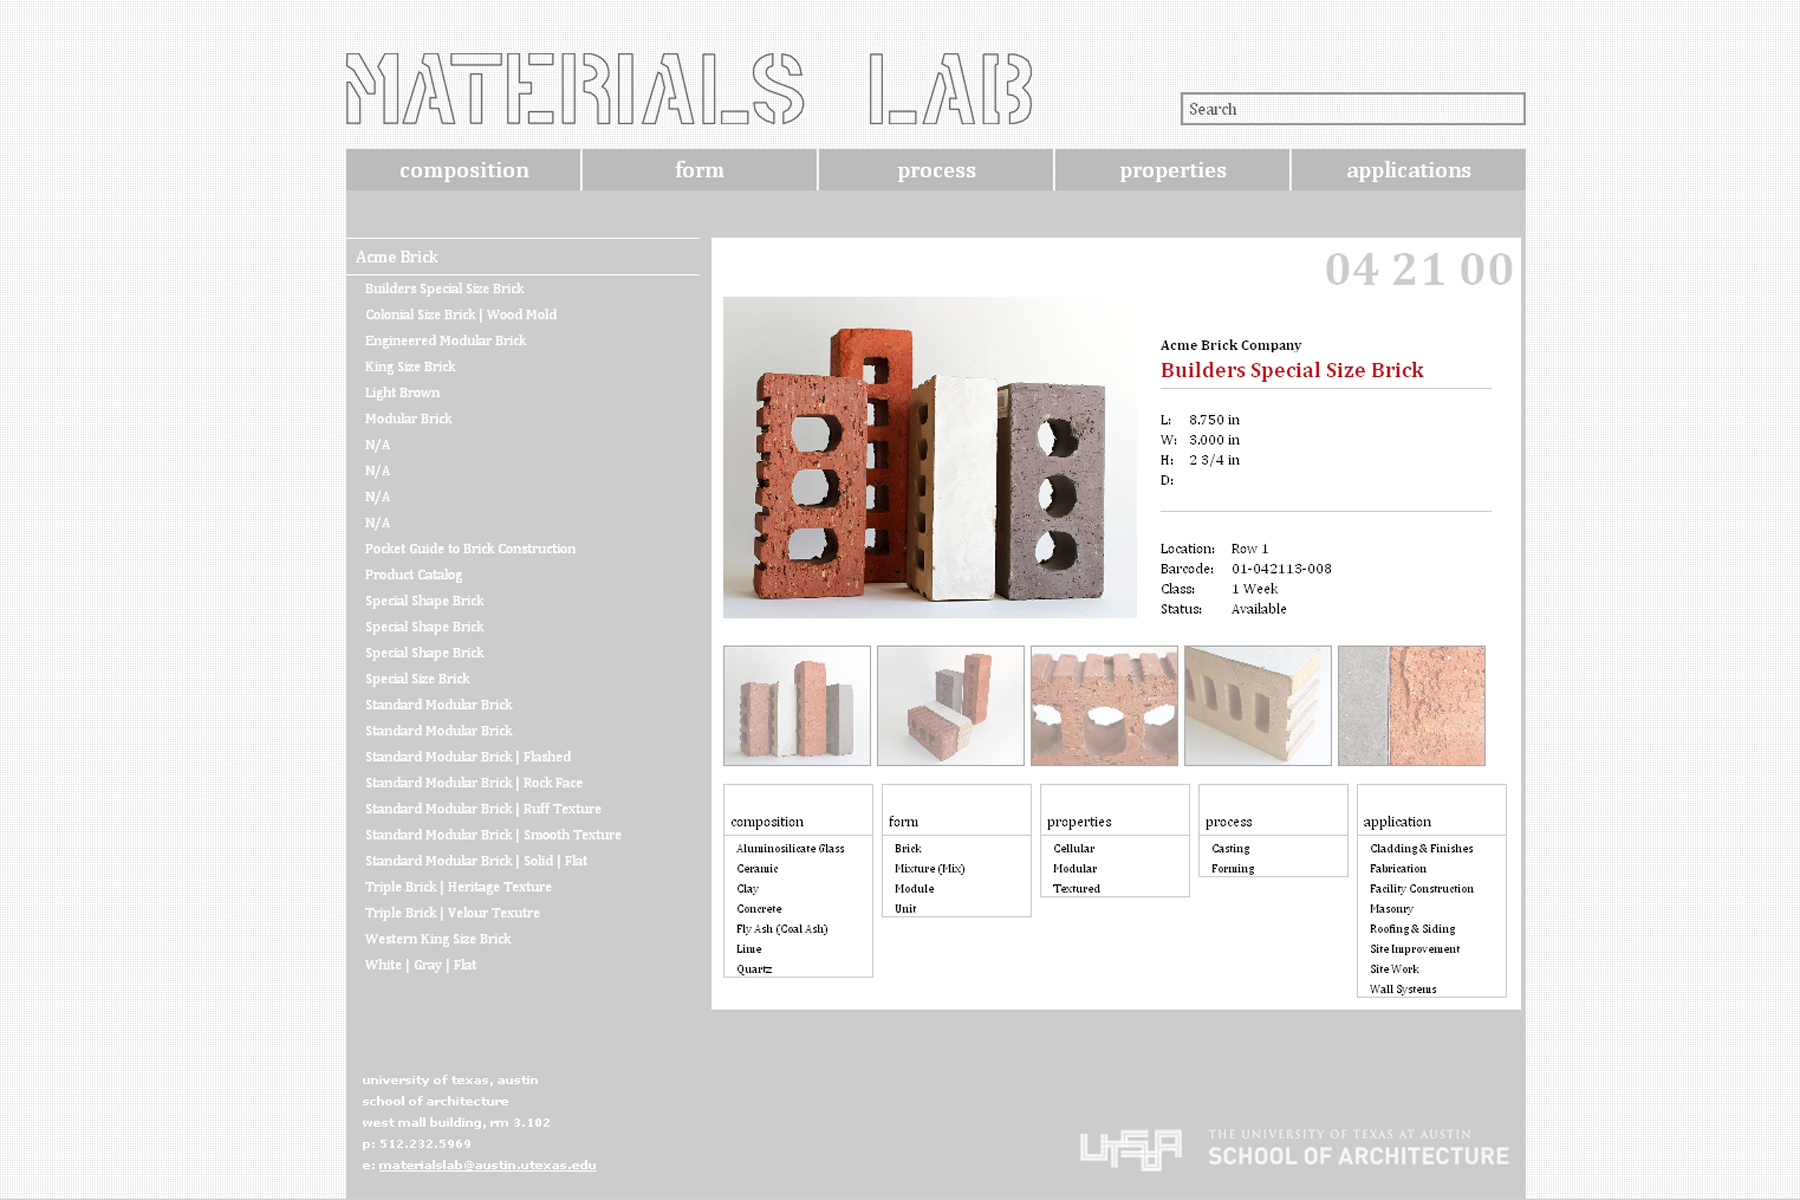 All material samples are searchable on our online database